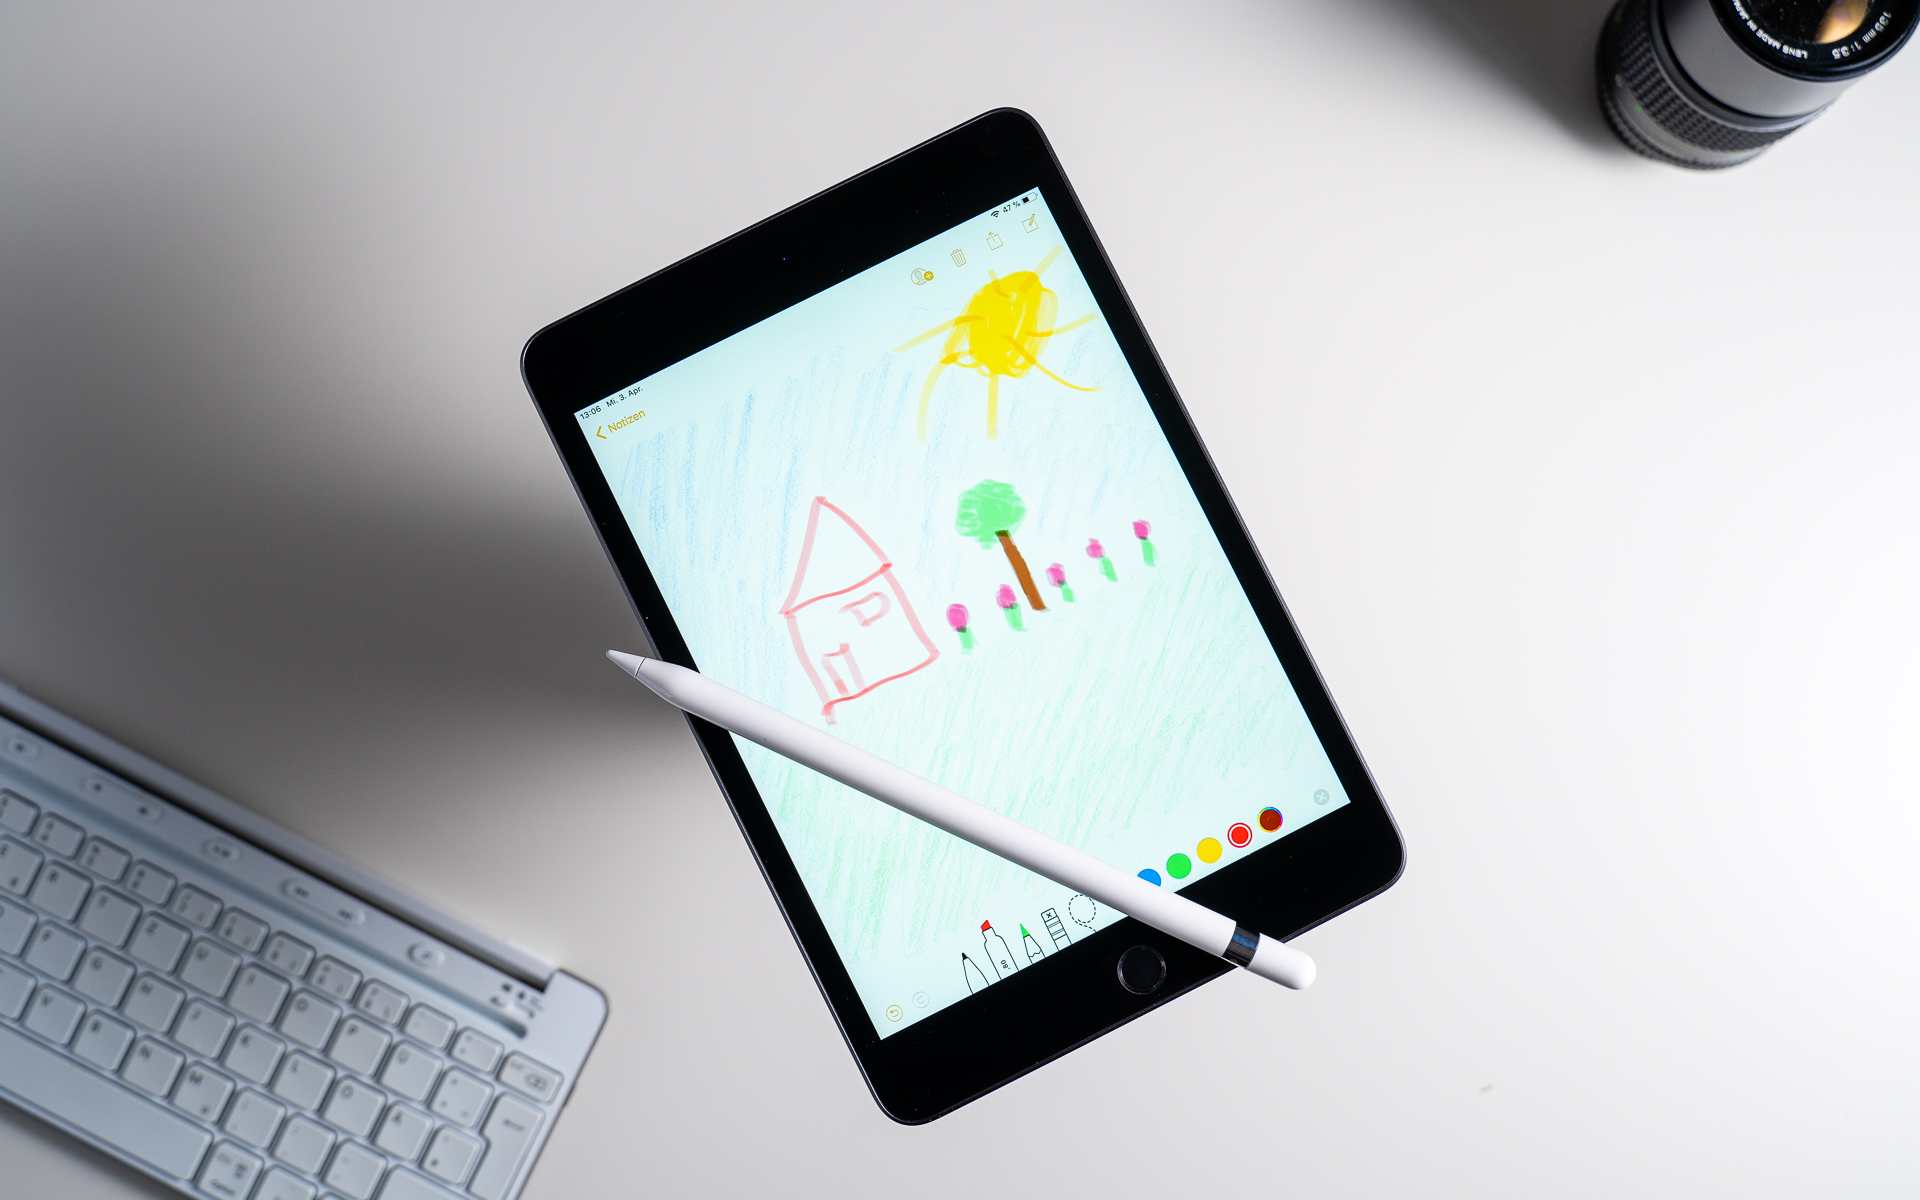 iPad Mini 2019 with Apple Pencil